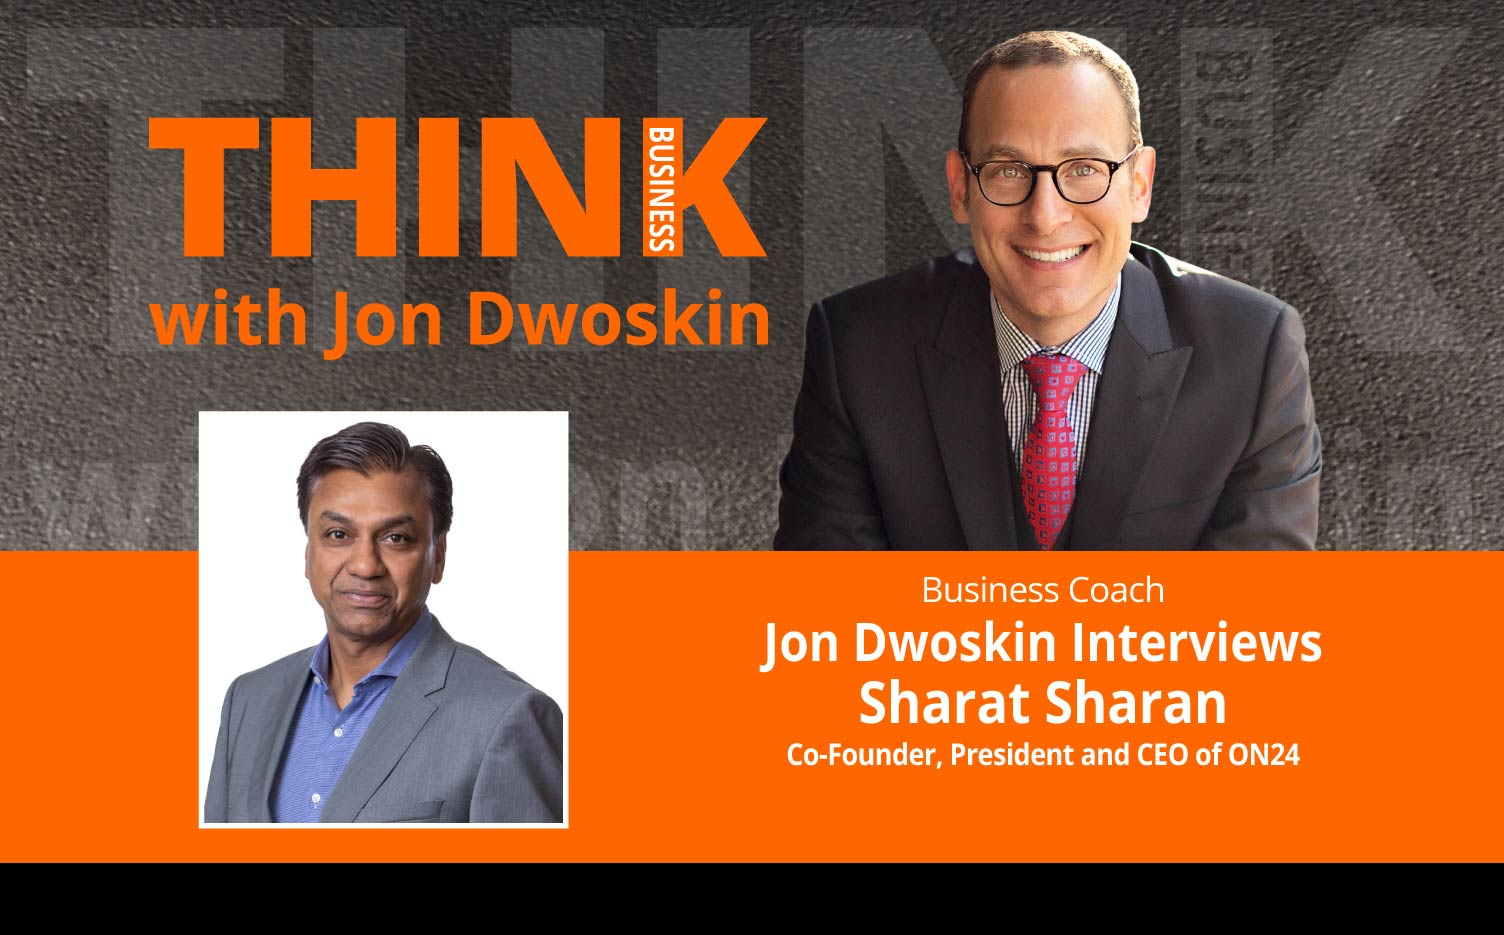 THINK Business Podcast: Jon Dwoskin Interviews Sharat Sharan, Co-Founder, President and CEO, ON24